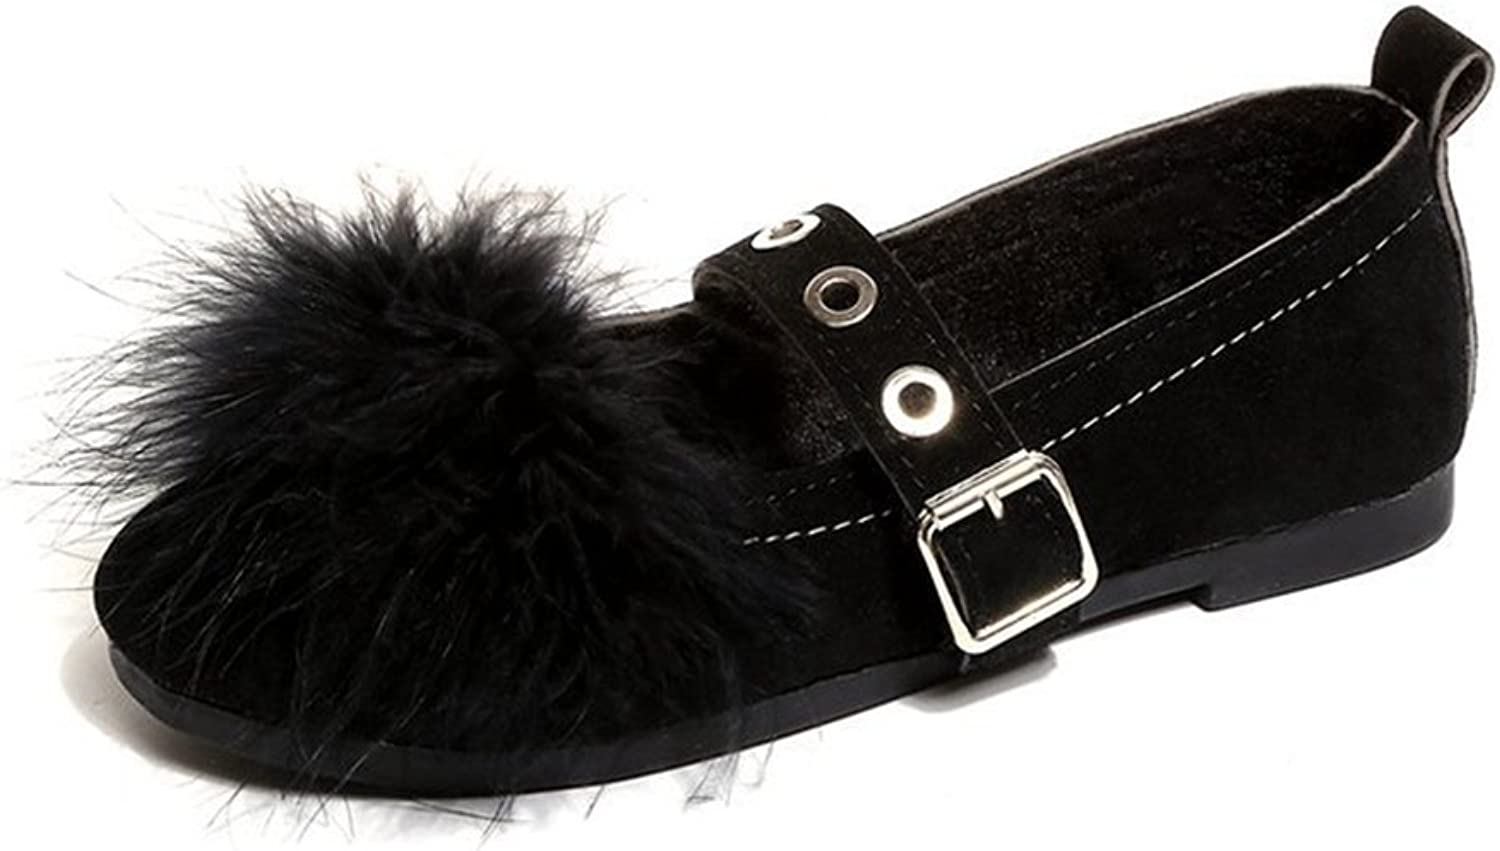 Btrada Women's Fluffy Pom Pom Moccasins shoes Flat Slip On Boat shoes Casual Driving Moccasins